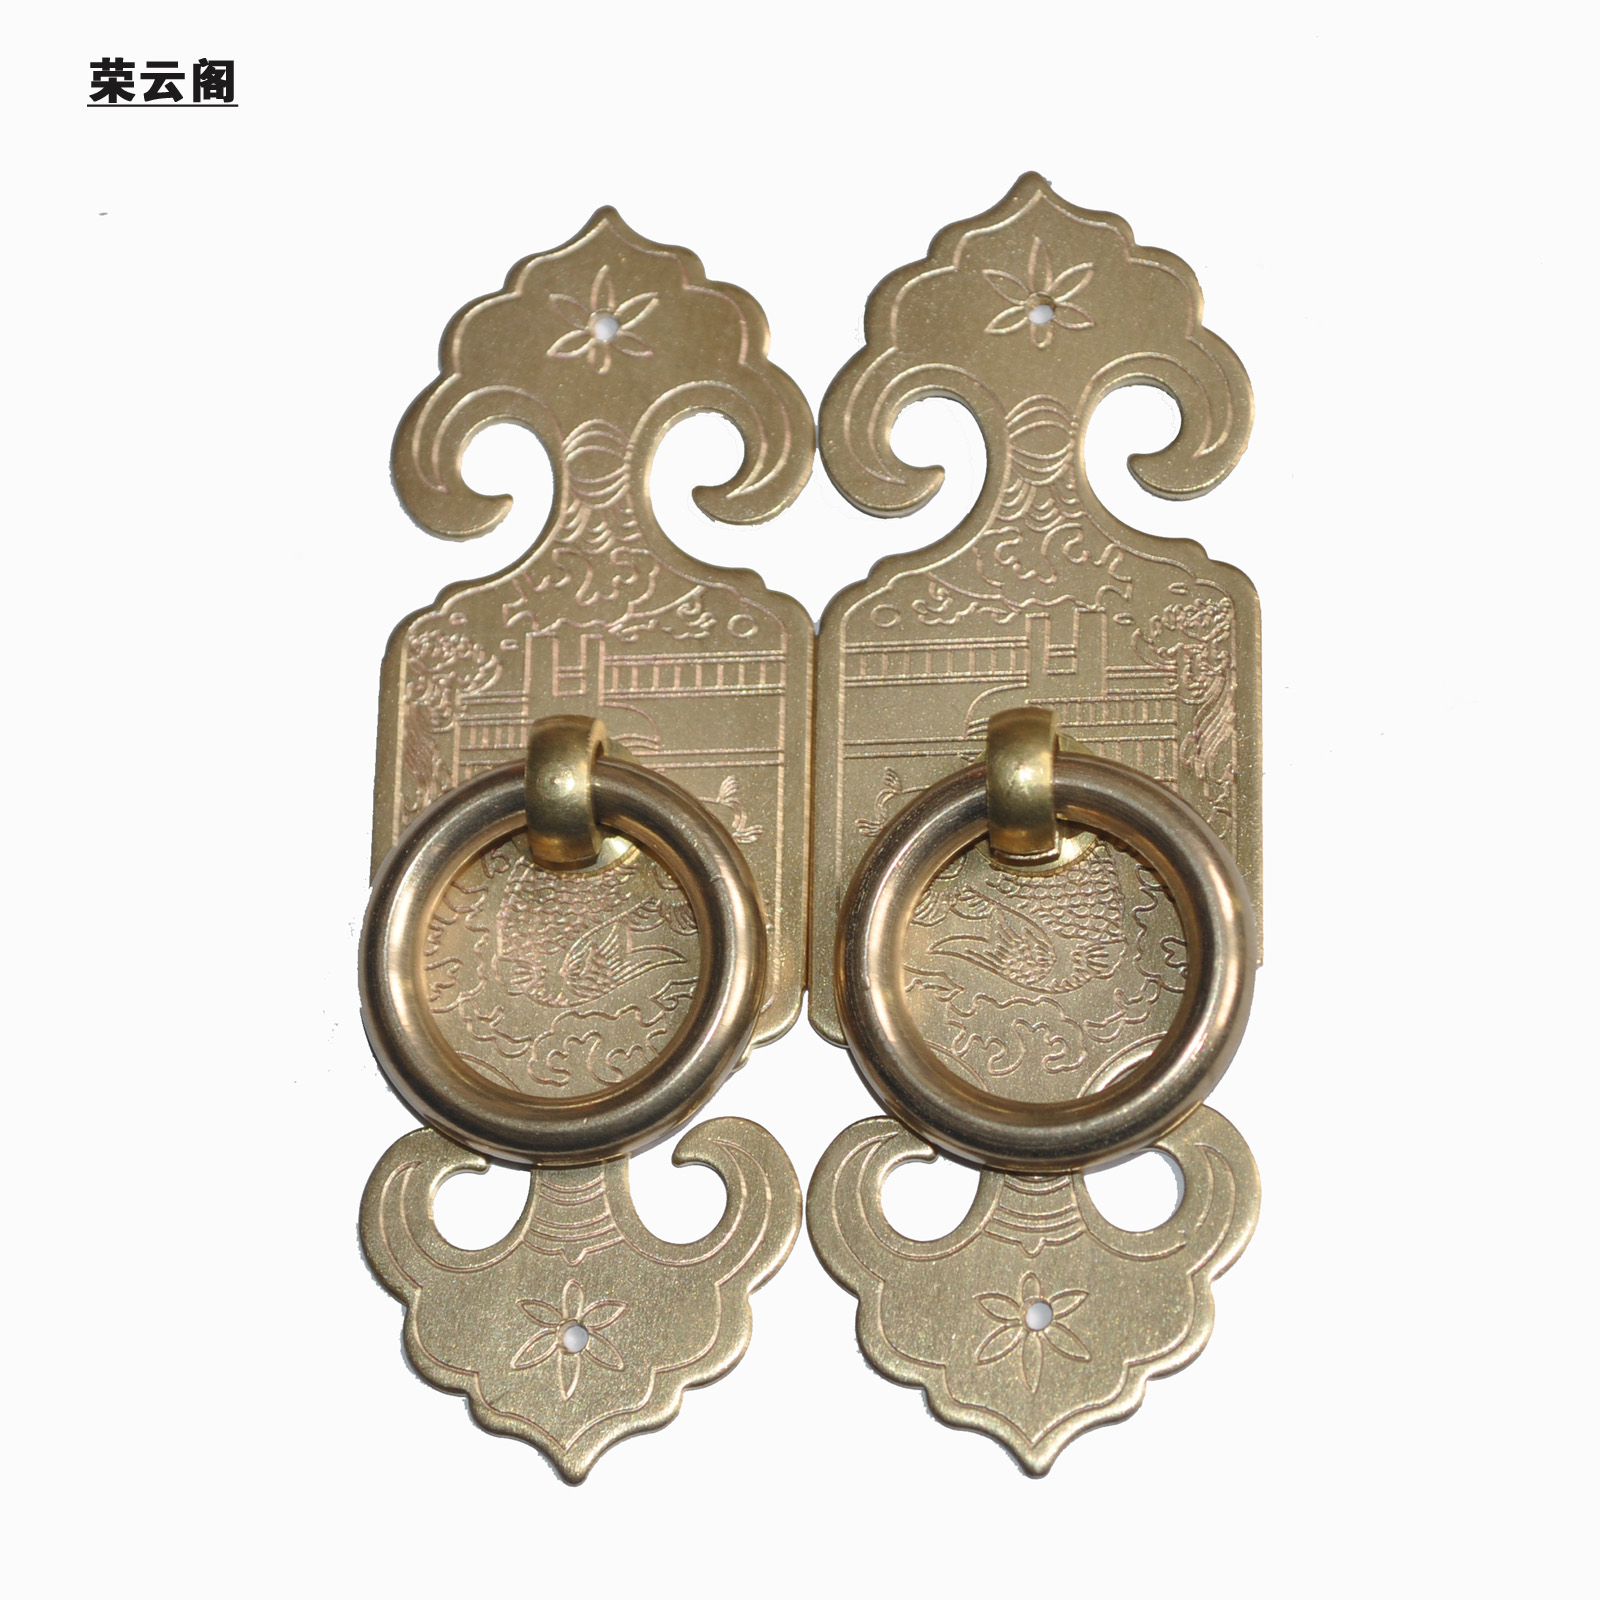 Chinese antique ming and qing furniture accessories doors copper brass carved fish figure handle handle handle small hole handle ag-30